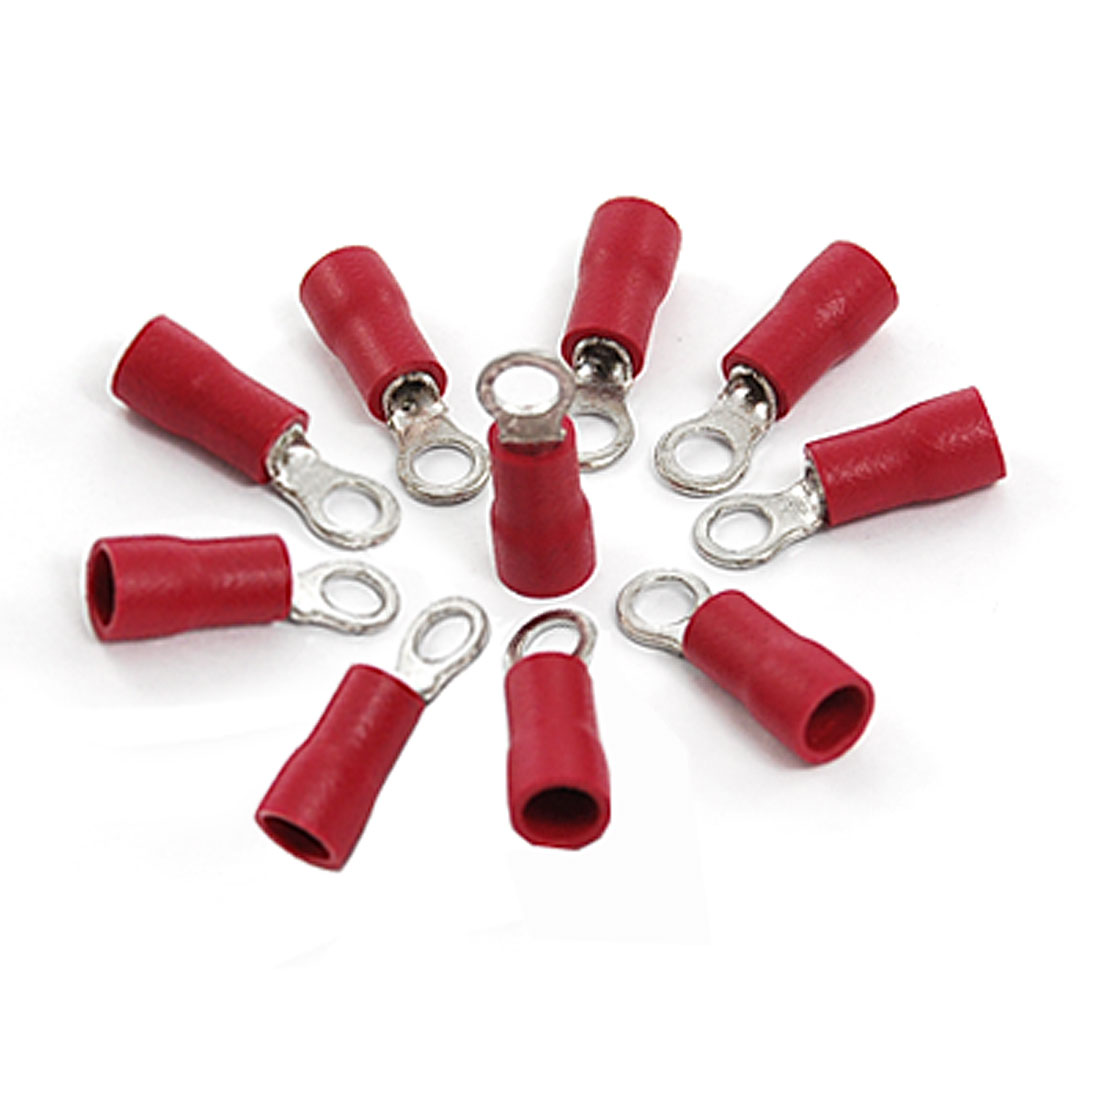 RV1-25-3-2-Red-PVC-Sleeve-Insulated-Ring-Tongue-Terminals-10-Pcs